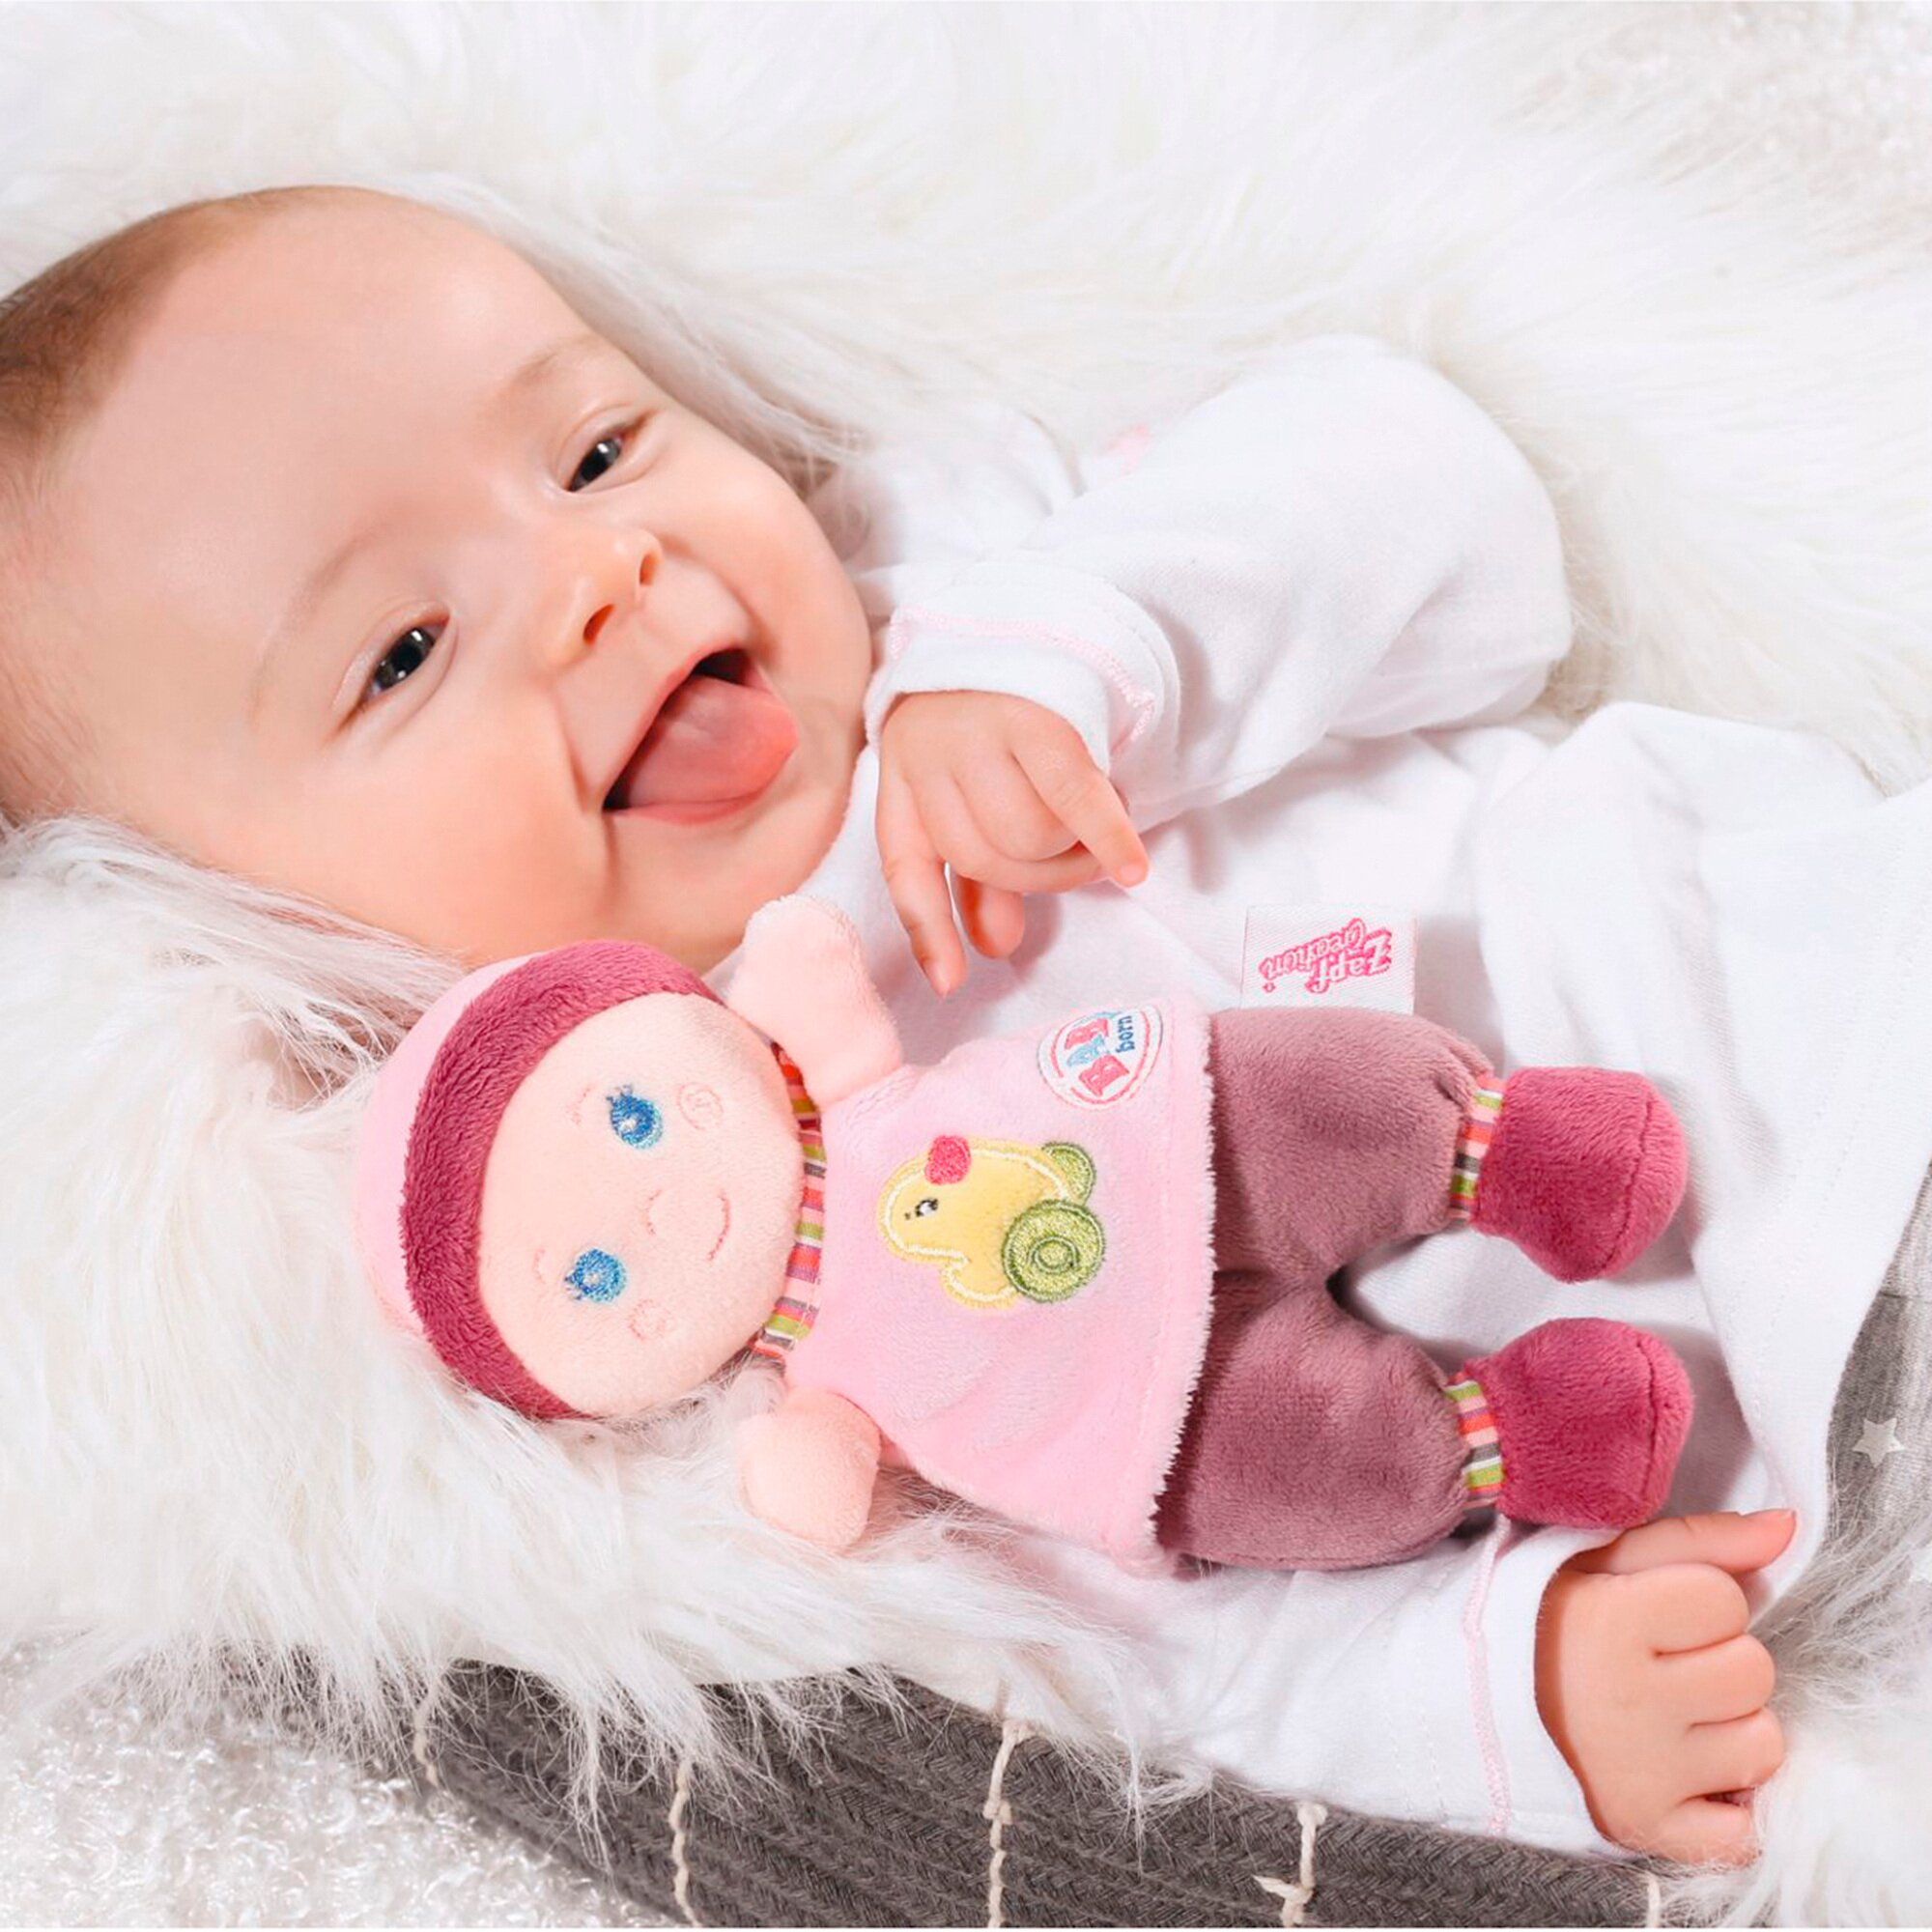 baby-born-for-babies-spielpuppe-18cm